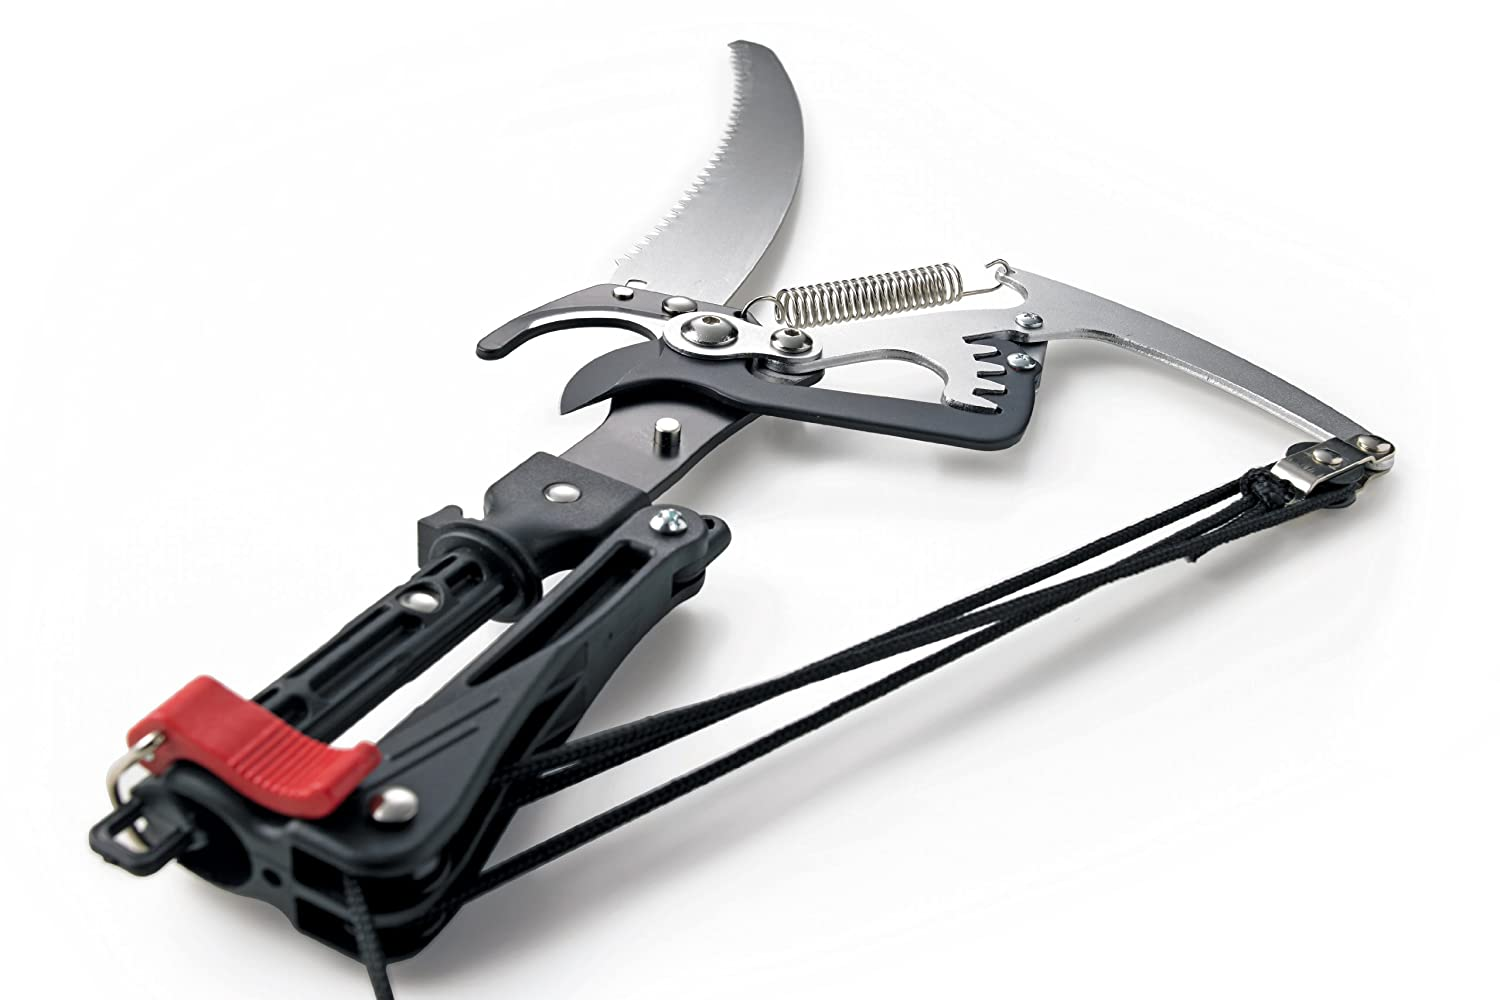 DP1563 Geared Bypass Tree Pruner & Saw - Darlac Expert Tree Pruning Range Others